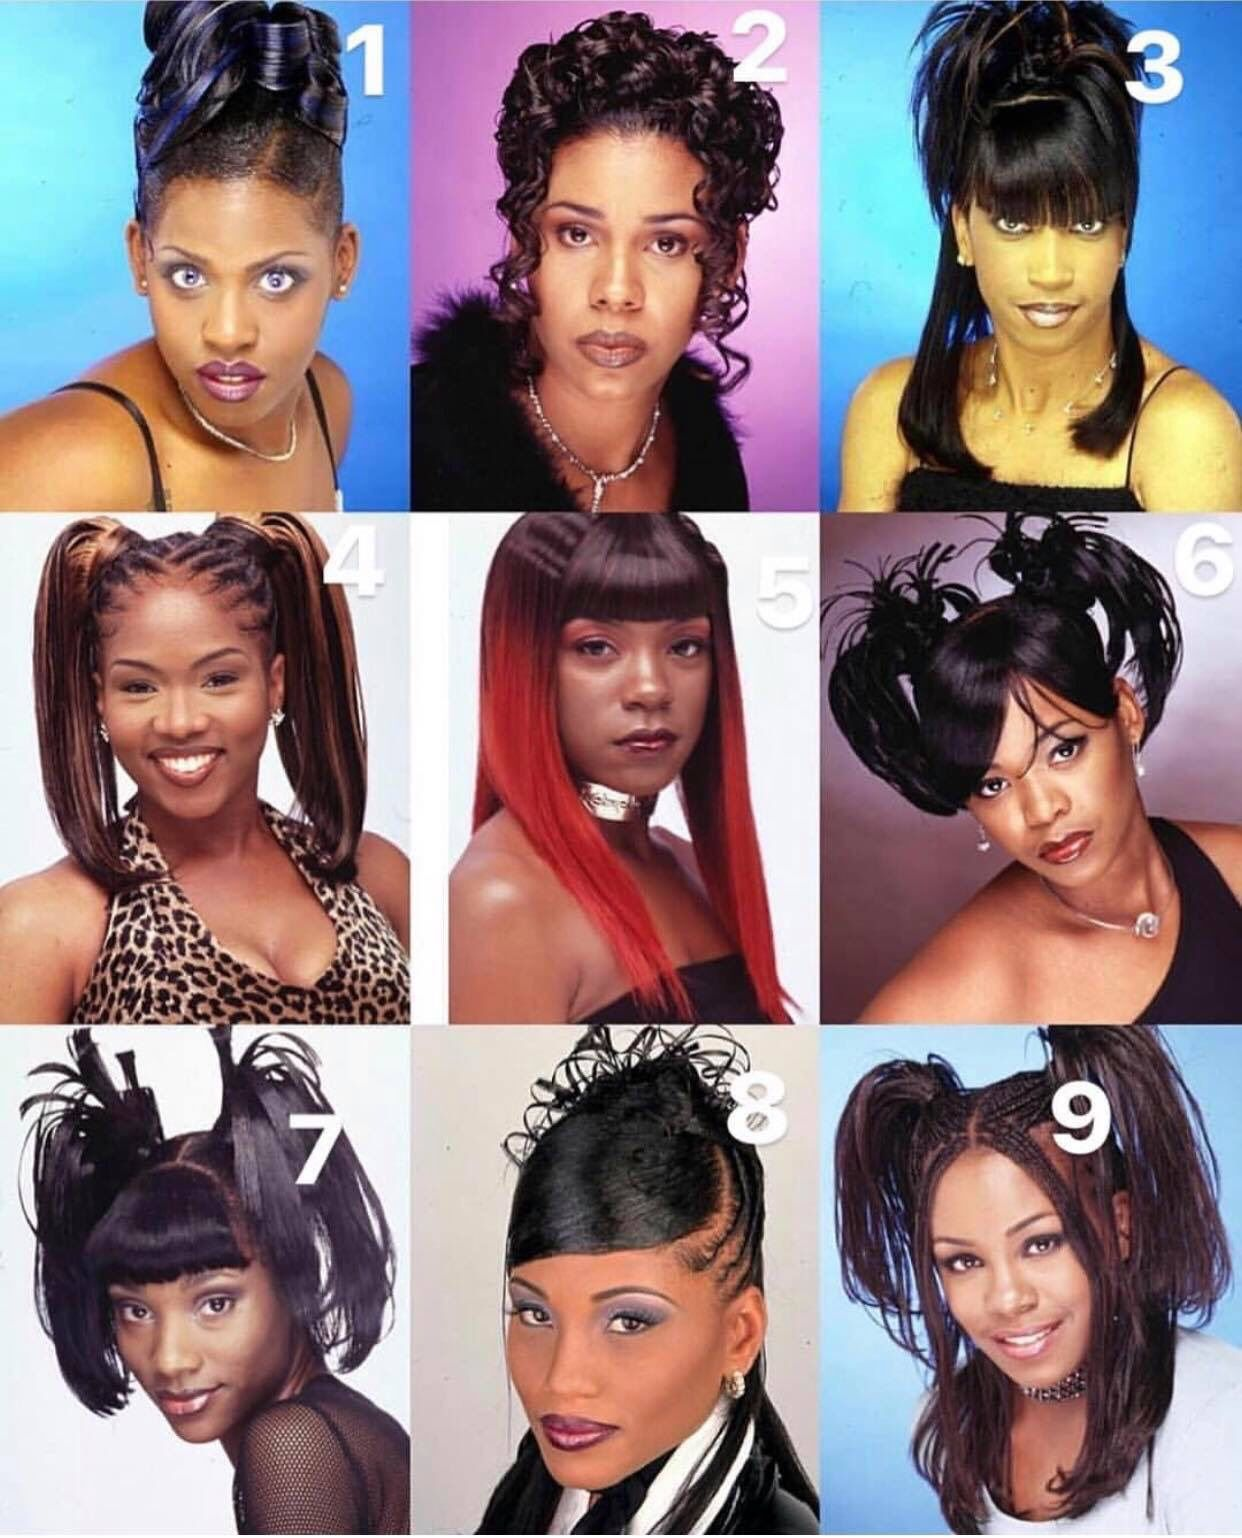 90s Hair 2000s Hairstyles Black Hair 90s 90s Hairstyles